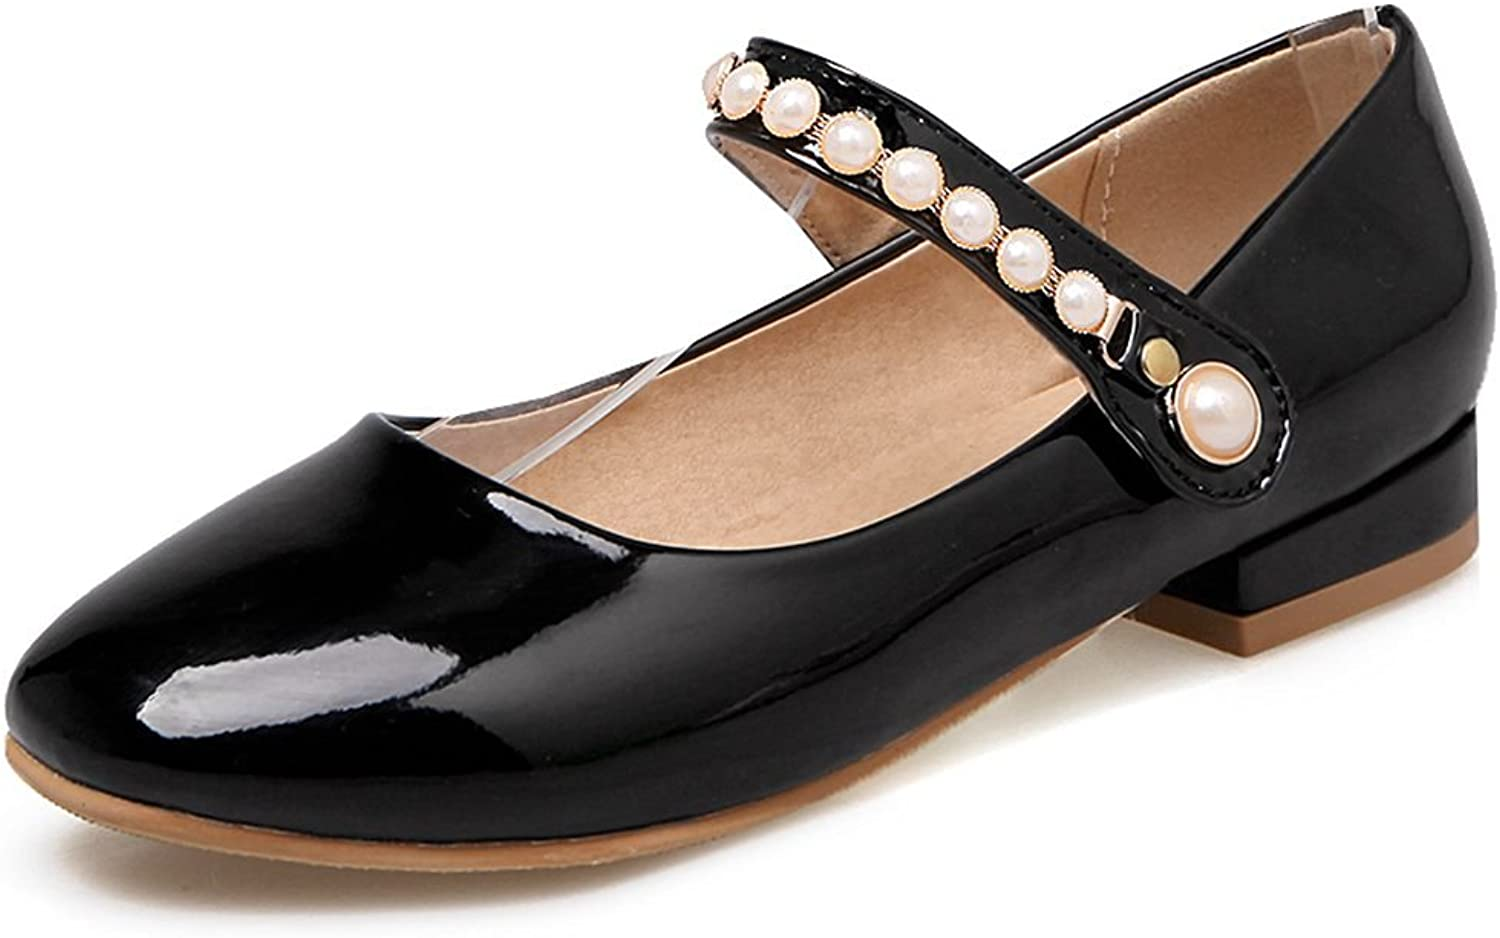 KingRover Women's Cute Pearl Hook and Loop Low Cut Mary-Jane Pumps with Ankle Strap